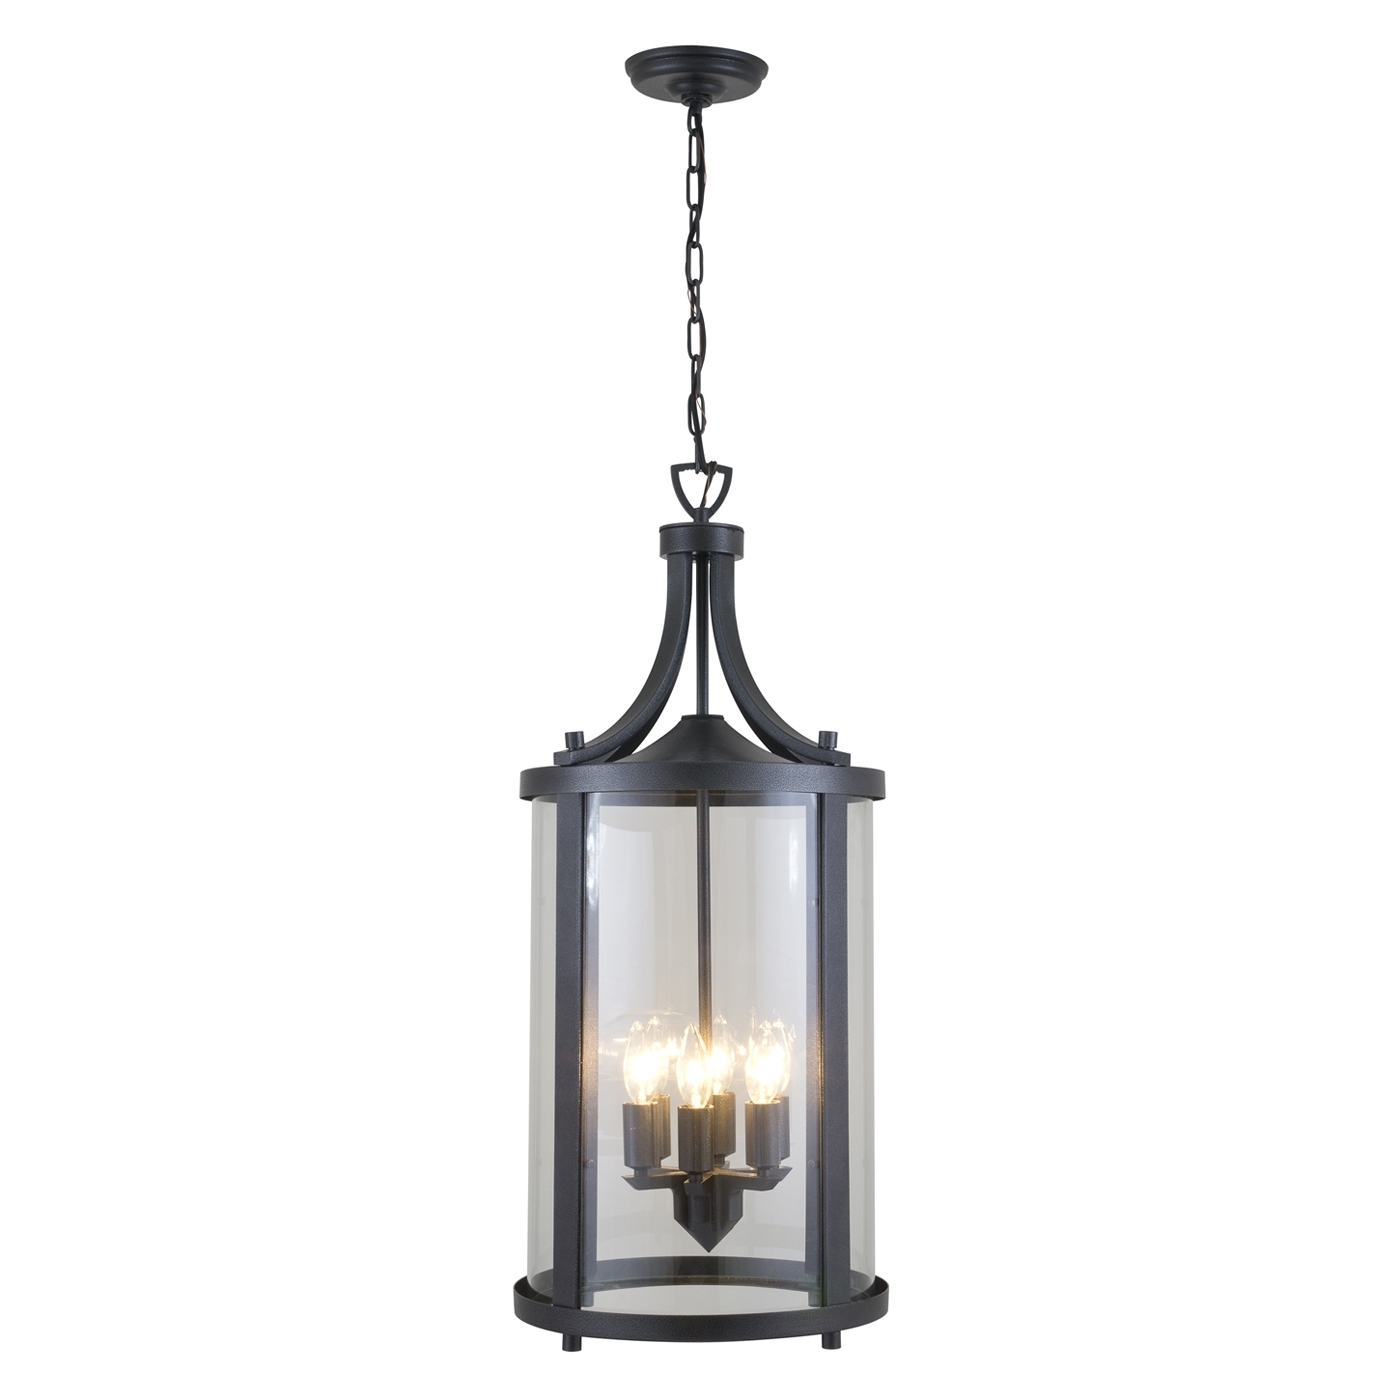 Inspiration about Dvi Niagara Outdoor Large Pendant | Lowe's Canada Throughout Outdoor Hanging Lanterns From Canada (#1 of 15)